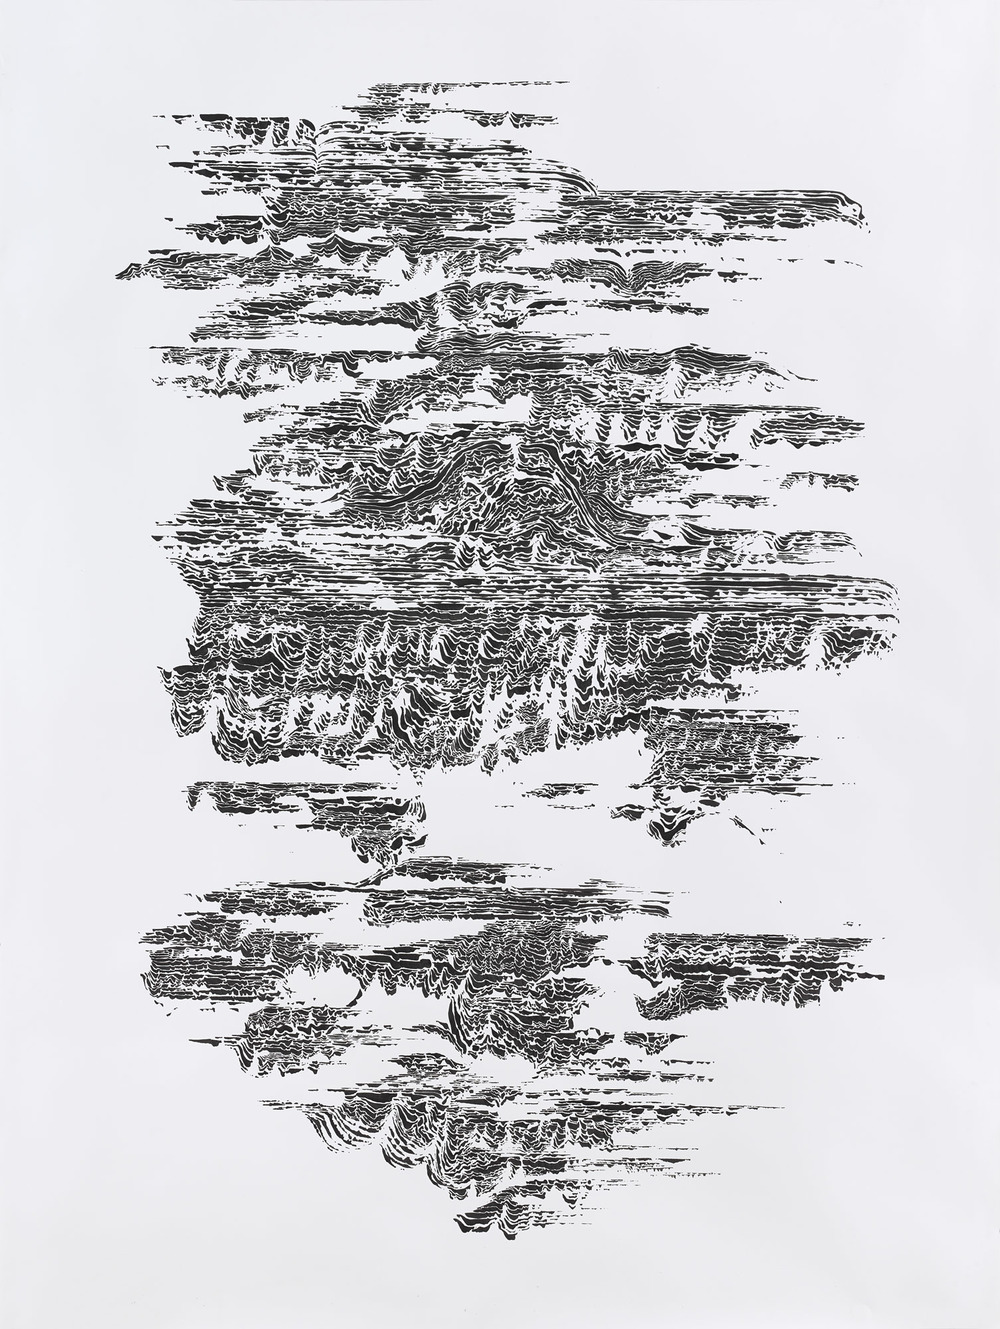 BK P7440 / untitled / ink on paper / 200x150cm / 2015 | privat collection berlin